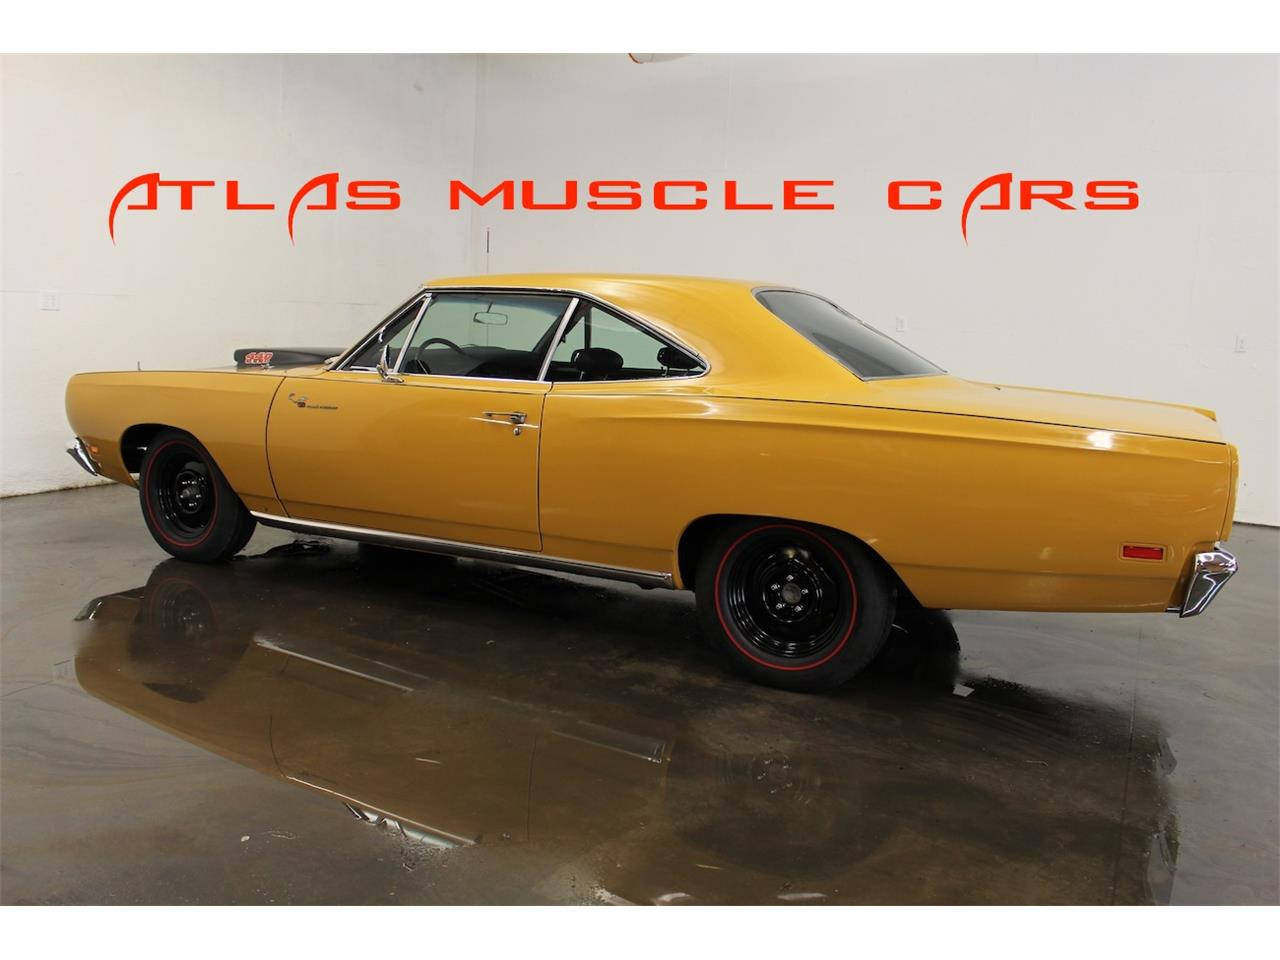 Large Picture of Classic '69 Road Runner located in Blue Ridge Texas - $85,000.00 Offered by Atlas Muscle Cars - LMSB